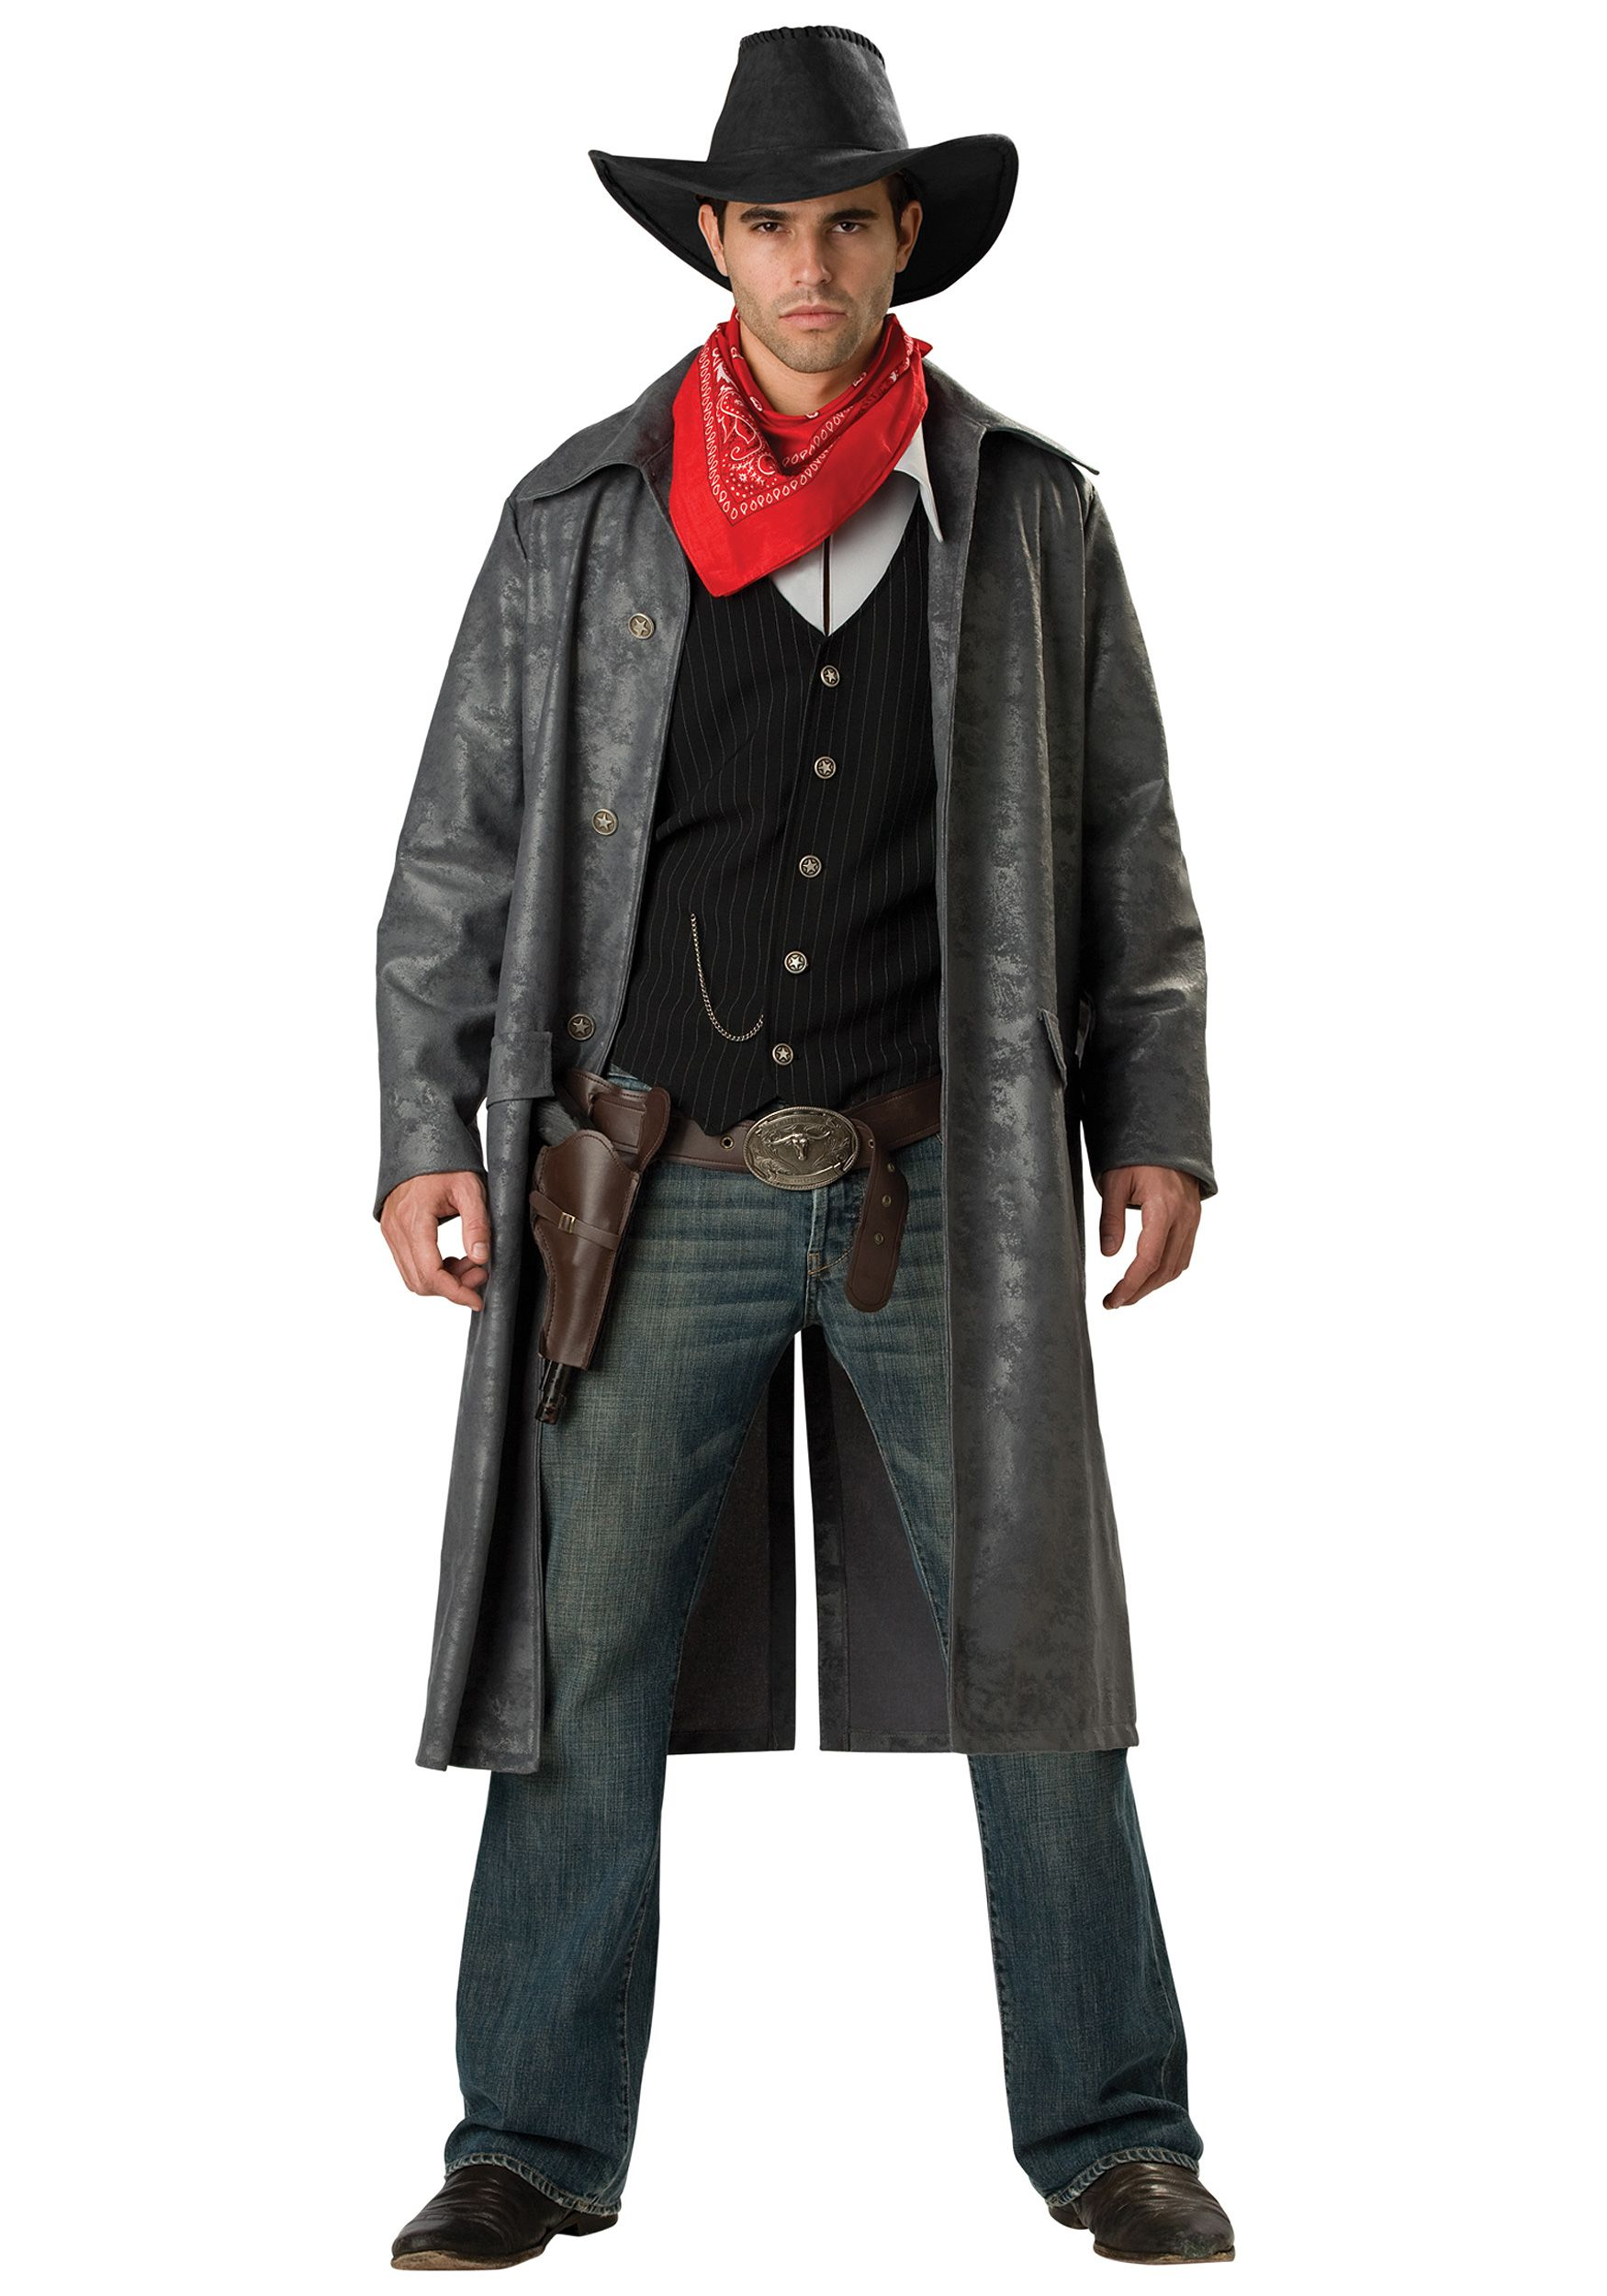 80eec70c1 wild west costume ideas - Google Search